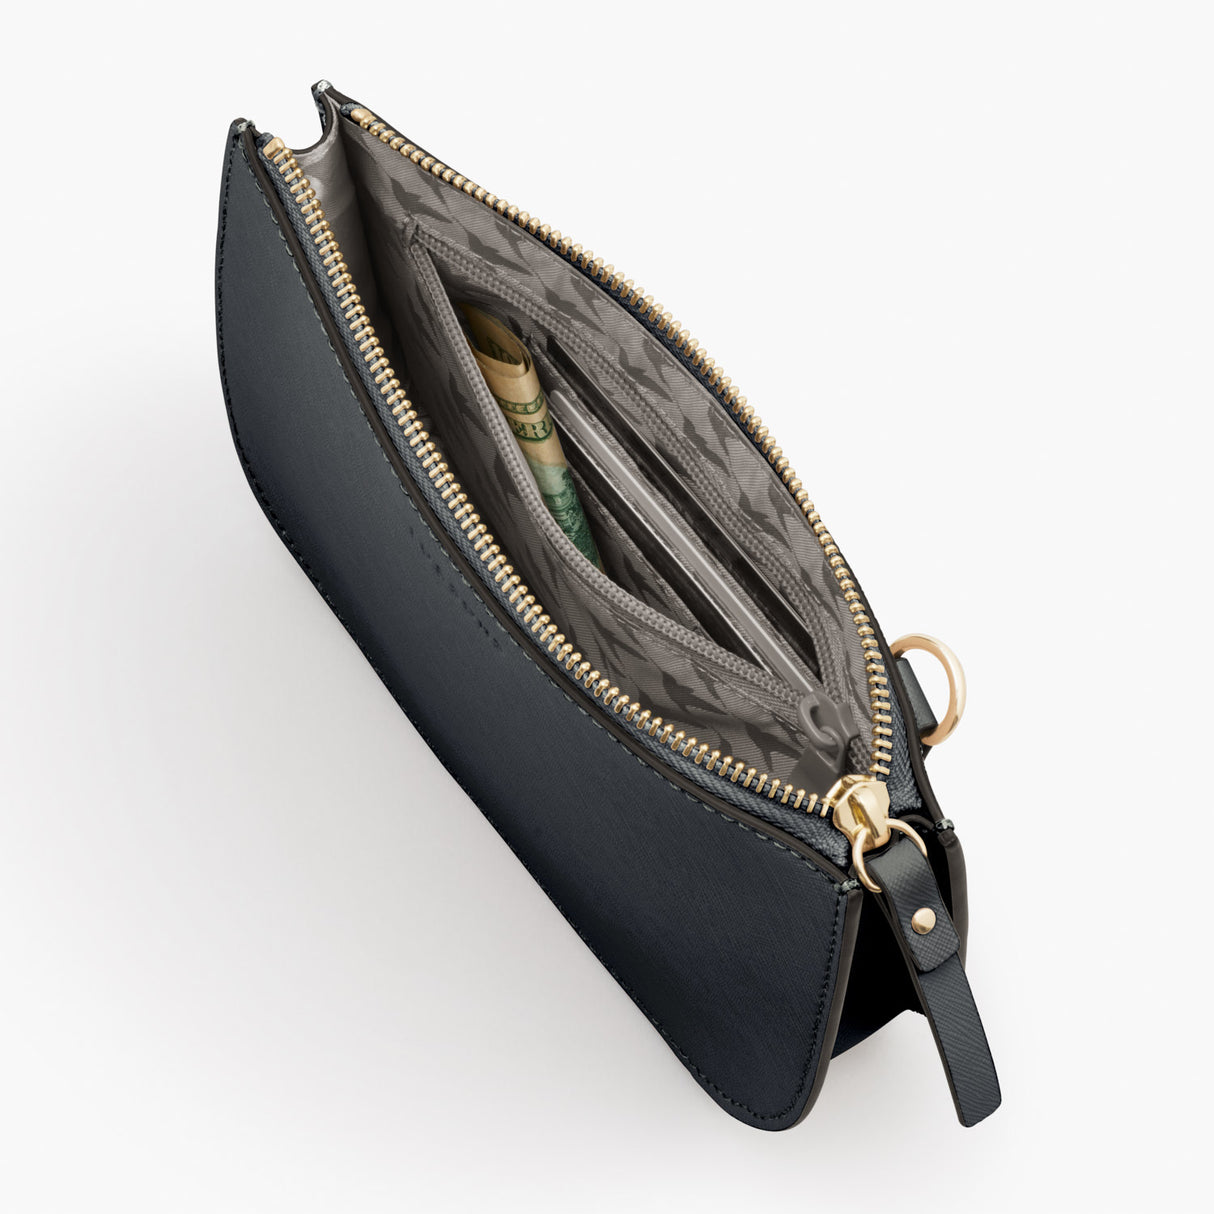 Interior Zipper - Waverley 2 - Saffiano Leather - Dark Grey / Gold / Grey - Crossbody Bag - Lo & Sons